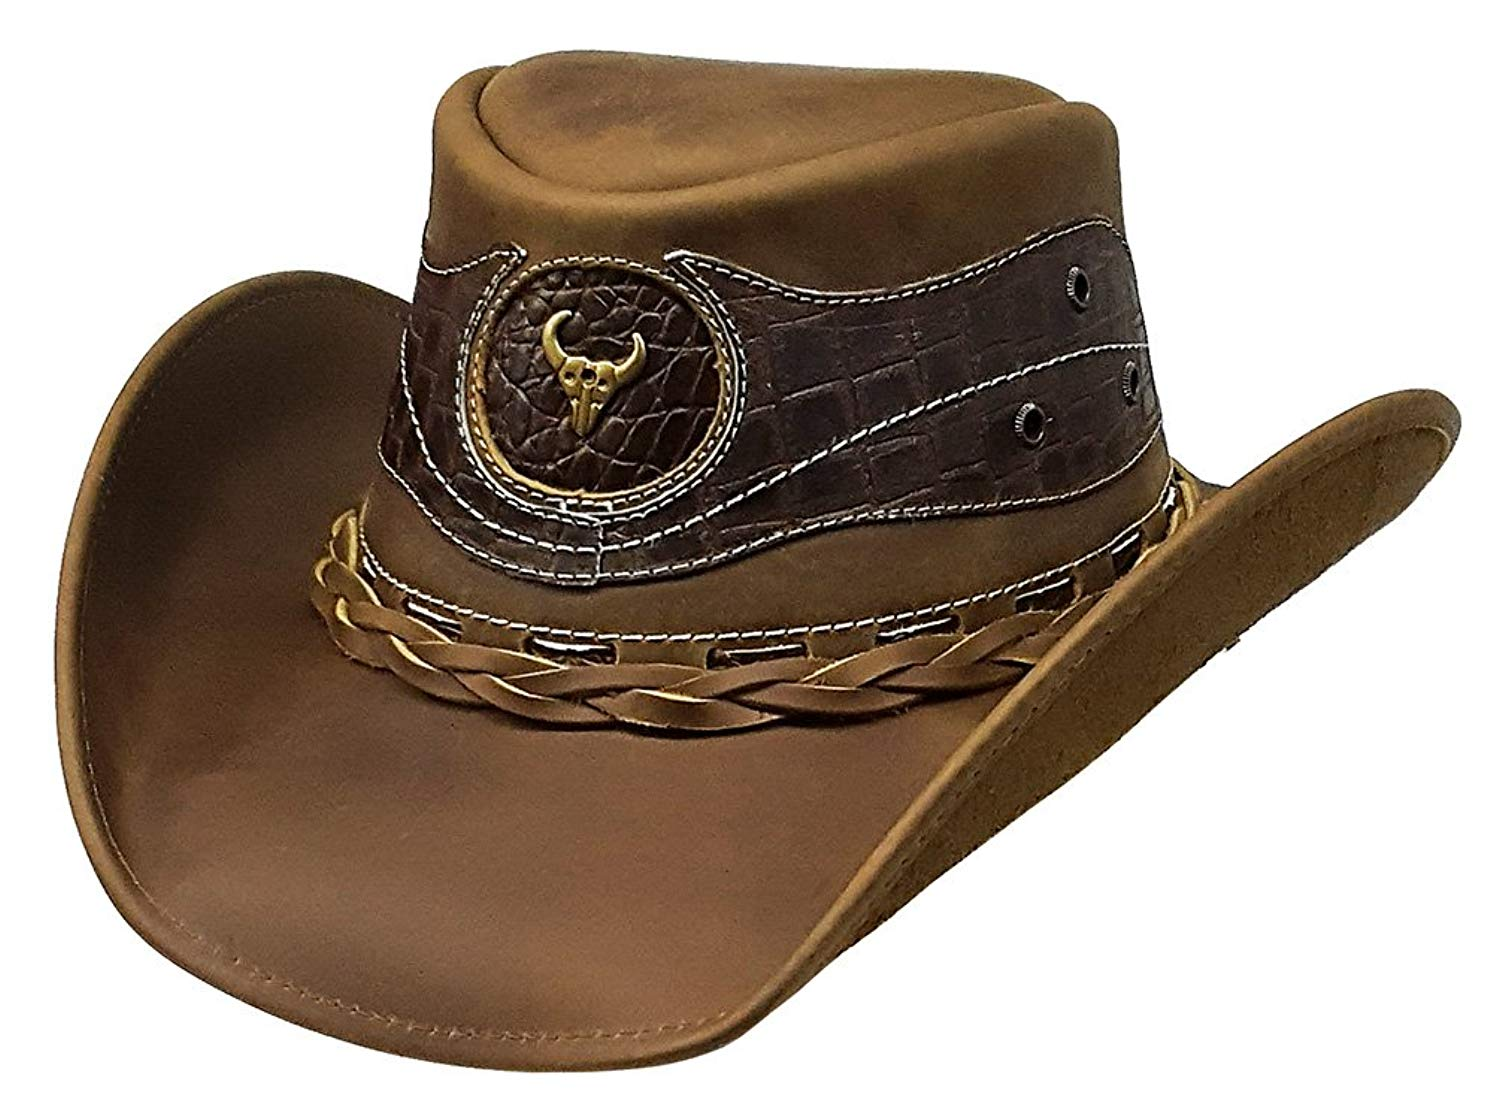 Get Quotations · Modestone Antiqued Leather Cowboy Hat Crocodile Skin  Pattern Applique cf0661f92773